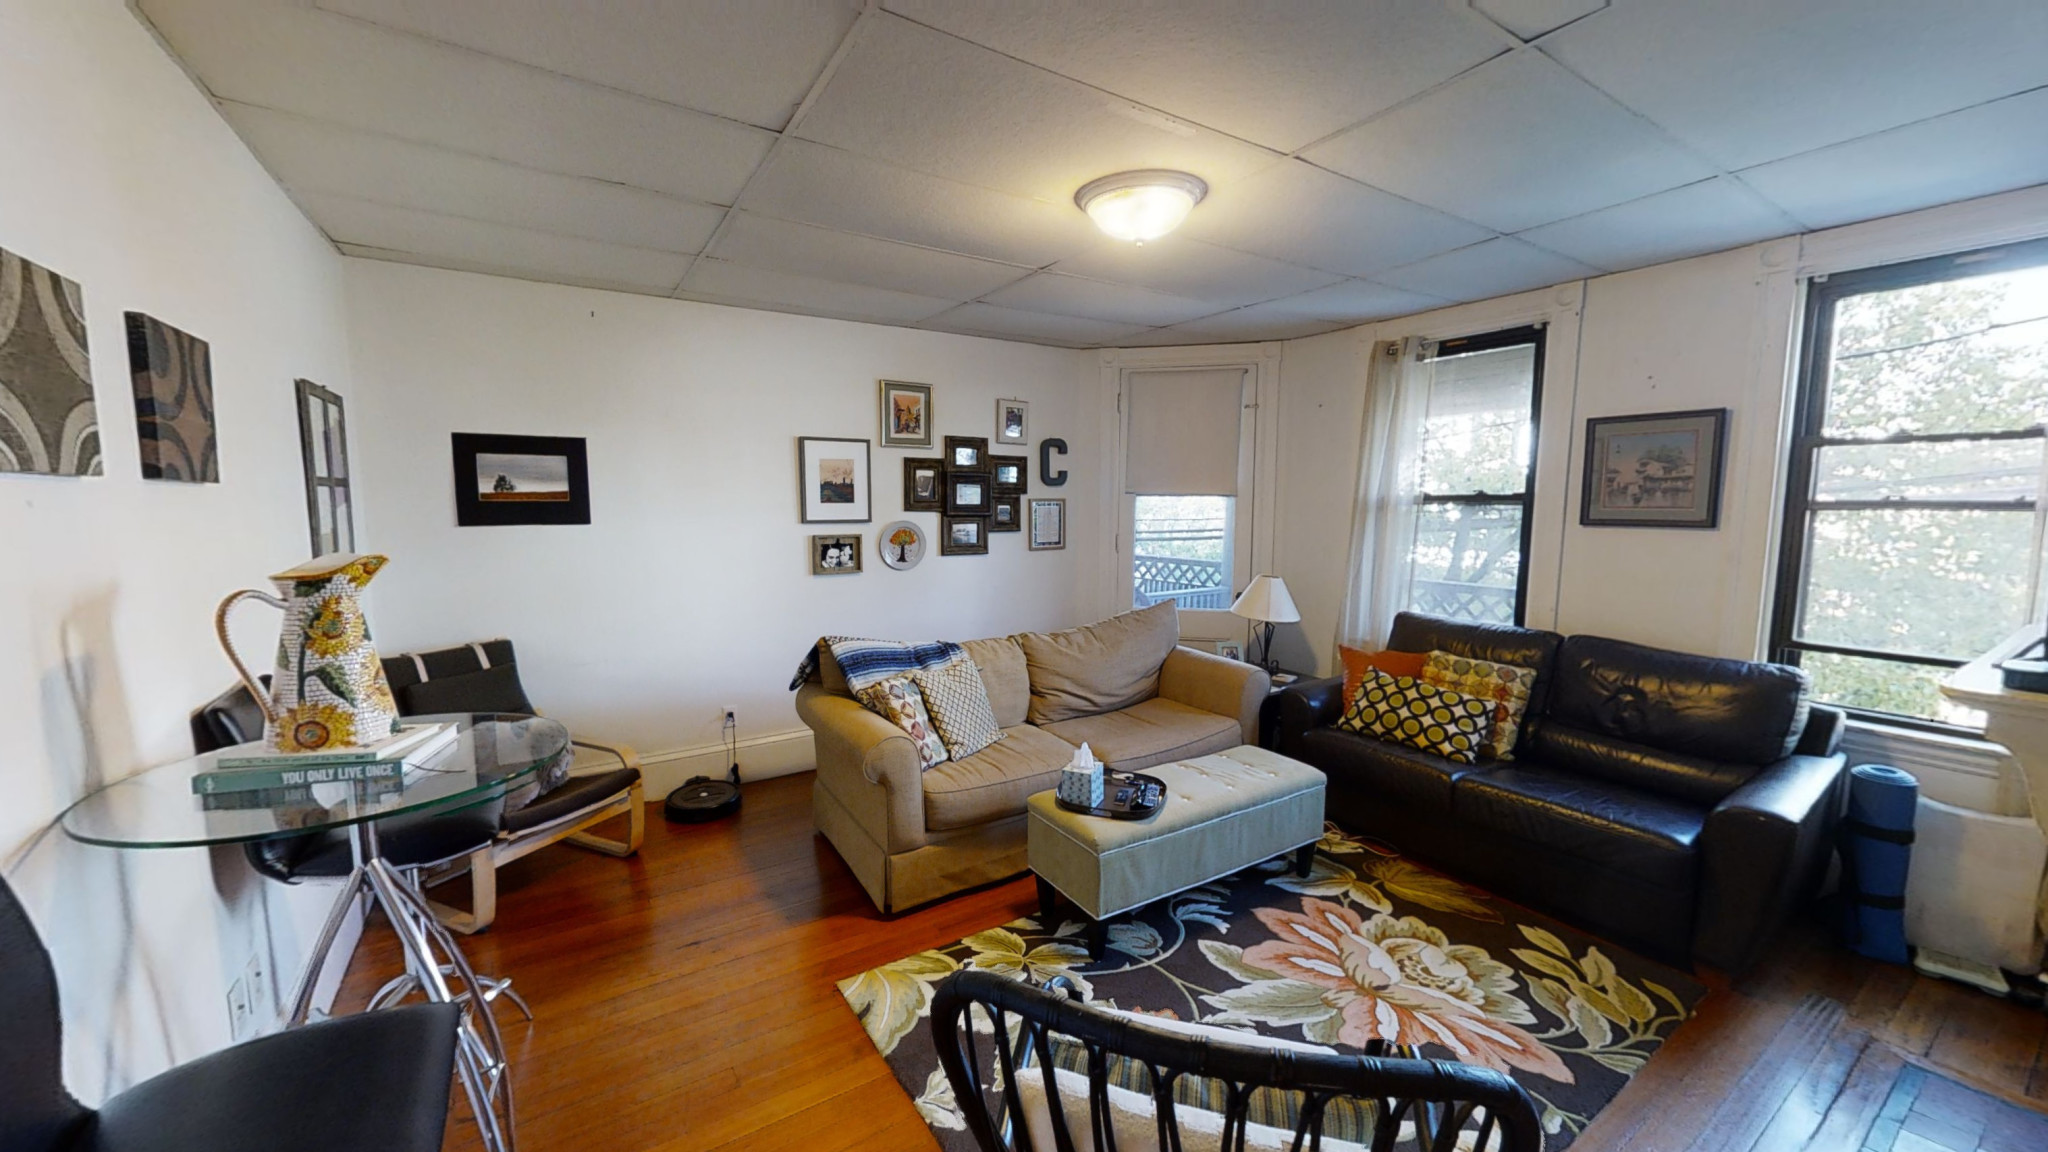 1 Bed, 1 Bath apartment in Somerville for $1,838